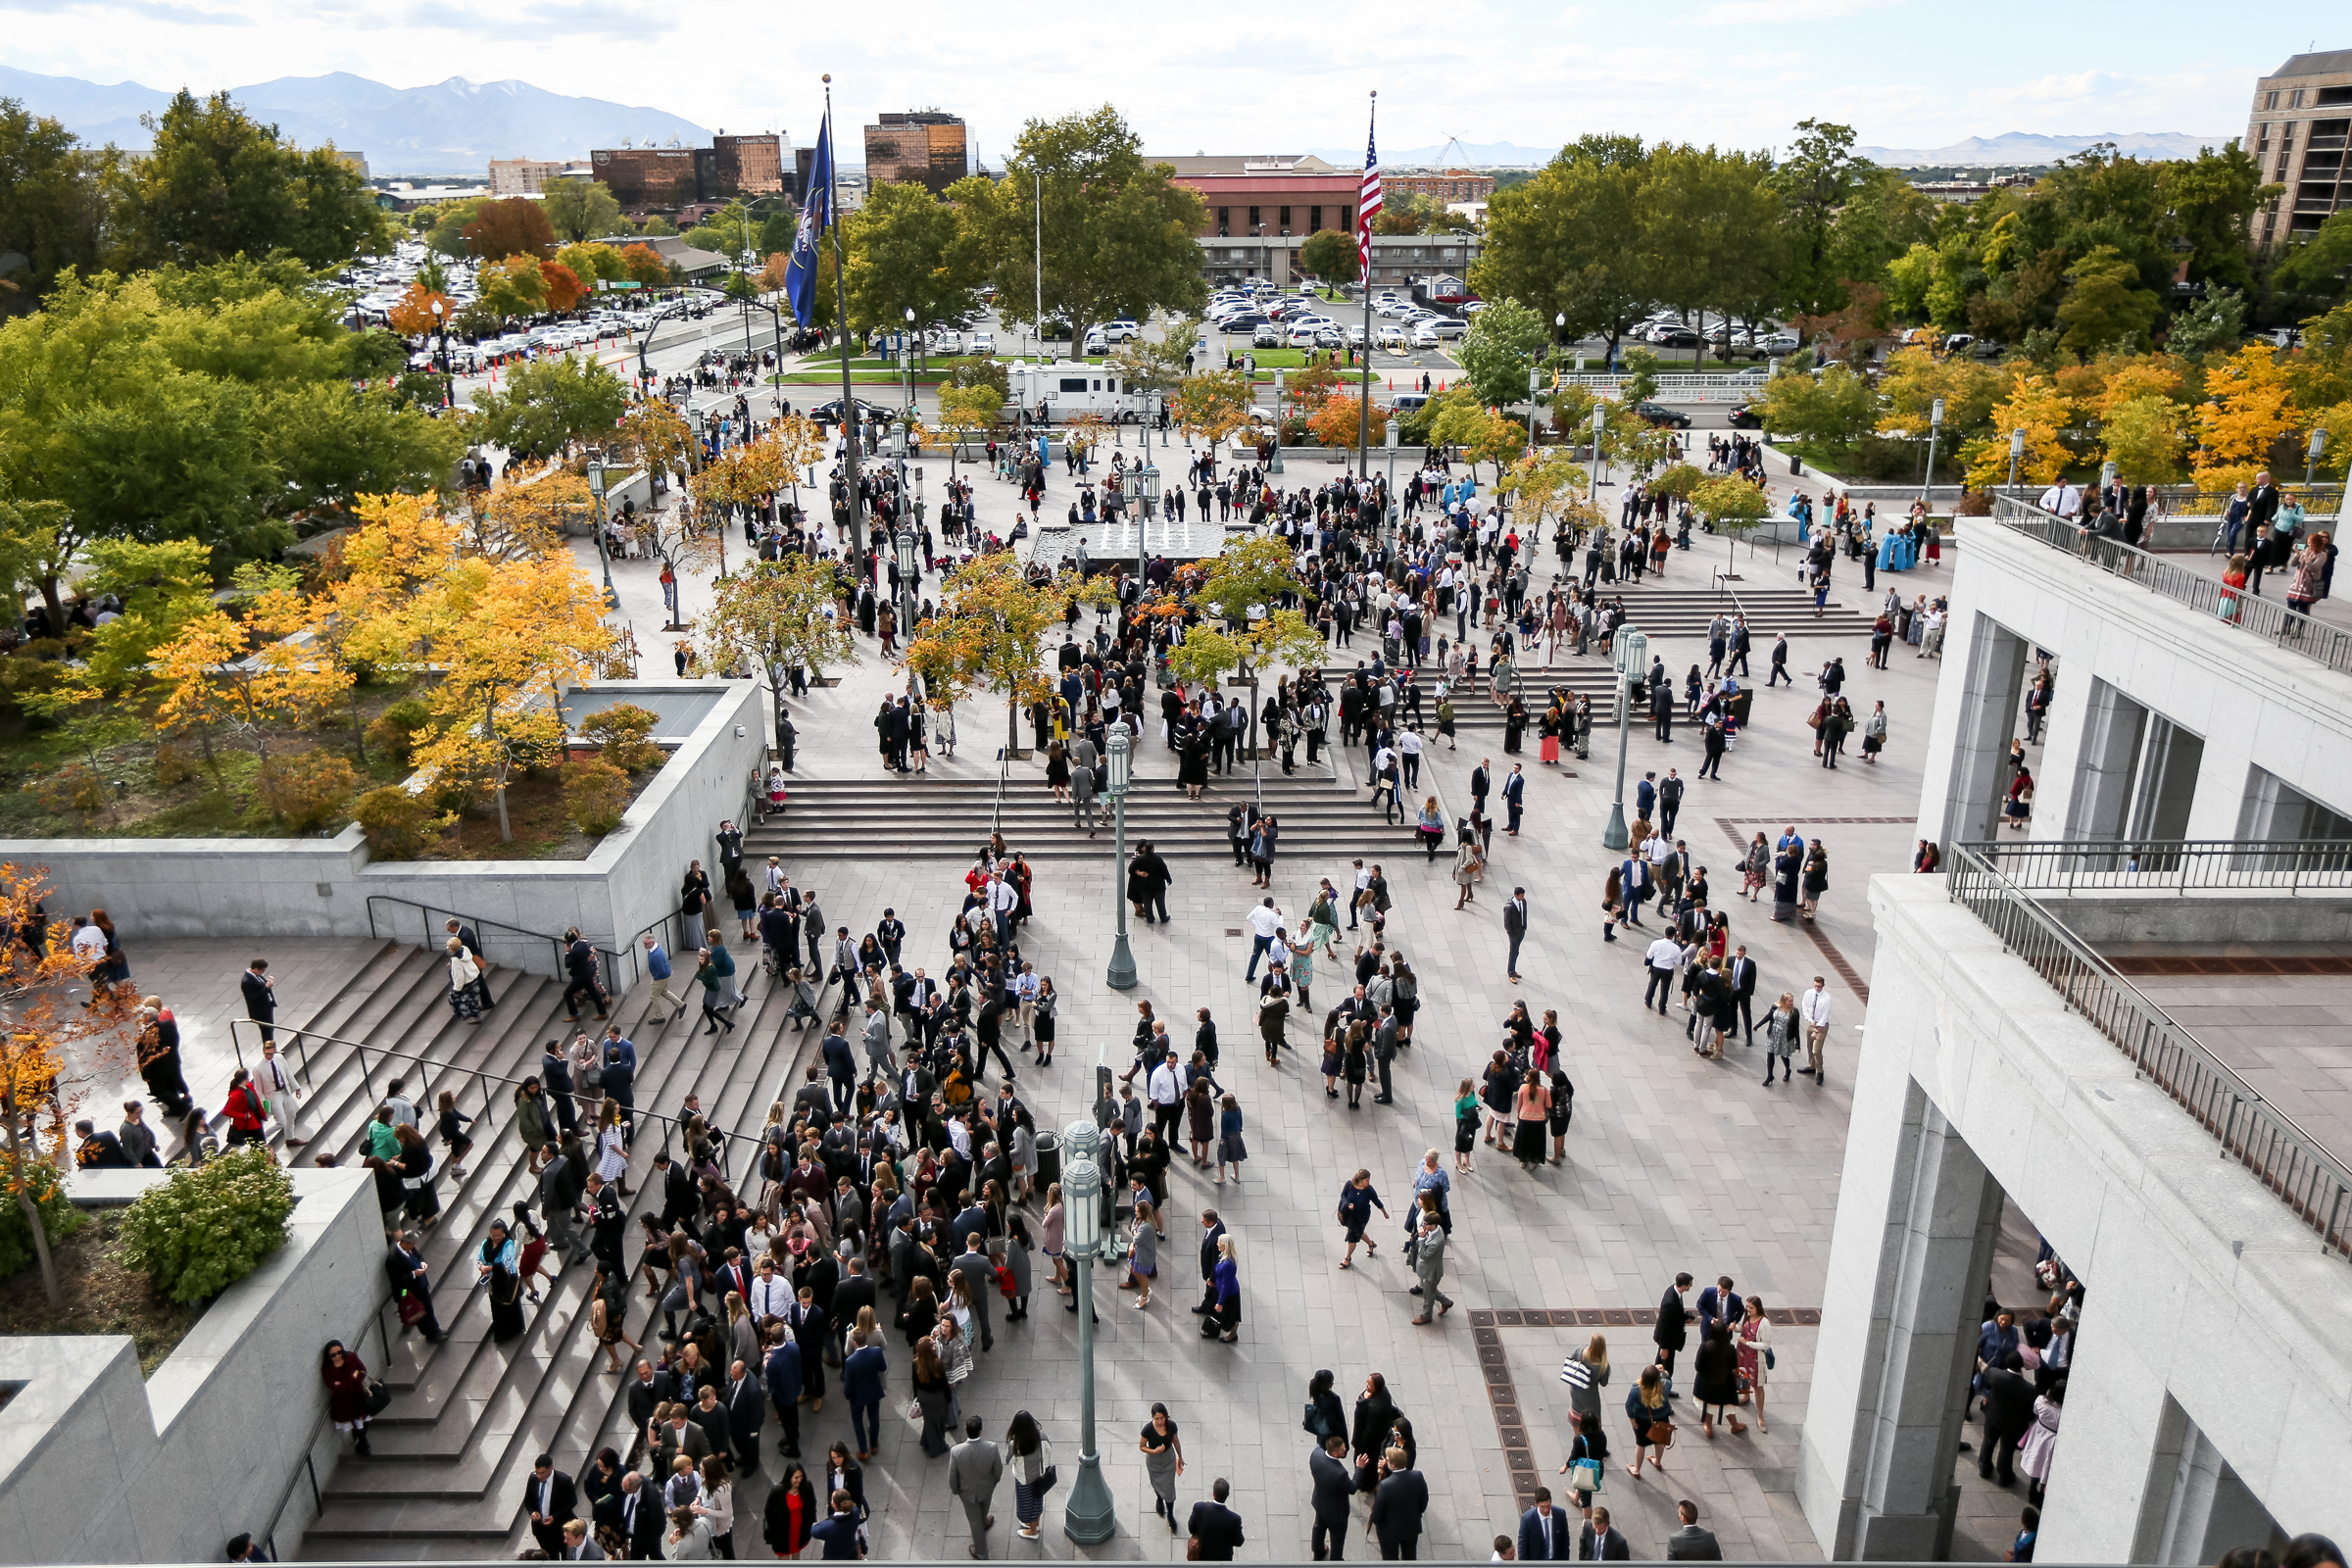 Conferencegoers exit the Conference Center after the Sunday afternoon session of the LDS Church's 187th Semiannual General Conference in Salt Lake City on Sunday, Oct. 1, 2017.